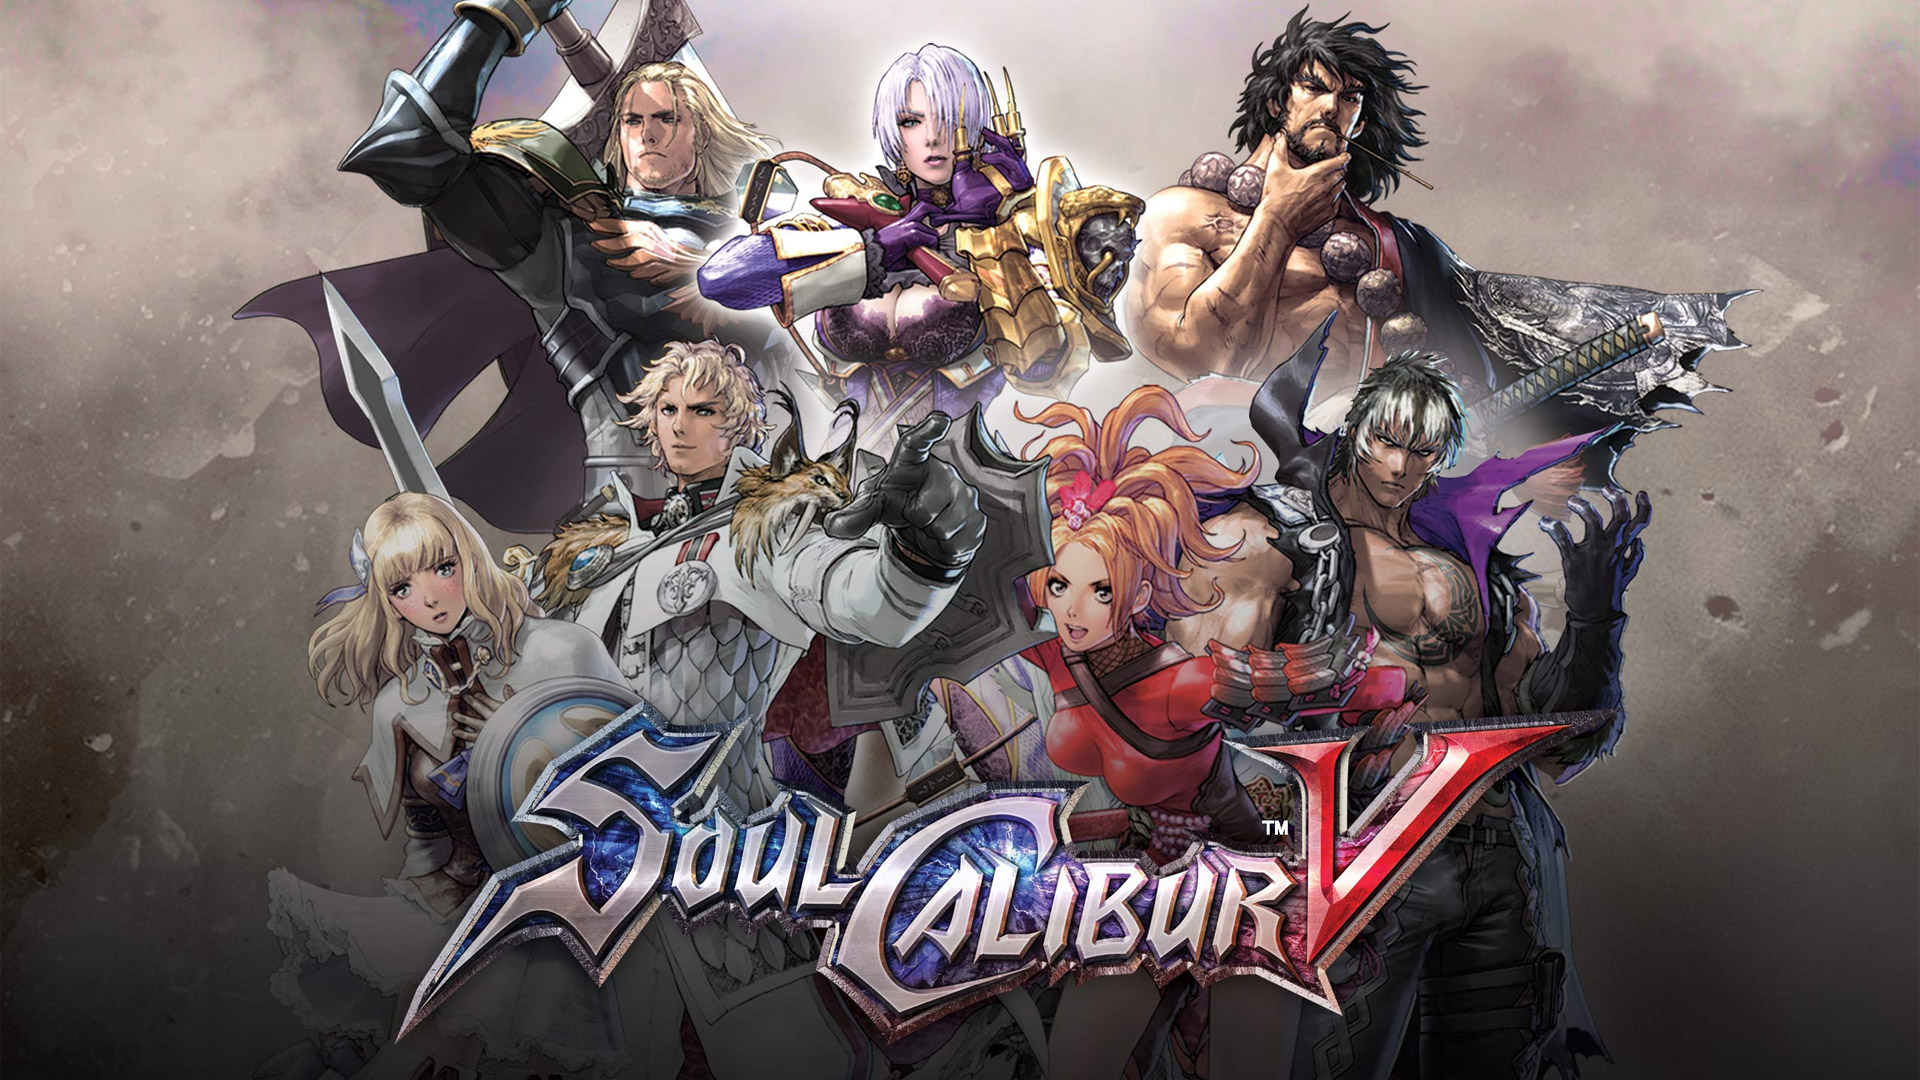 Soulcalibur V Wallpaper in 1920x1080